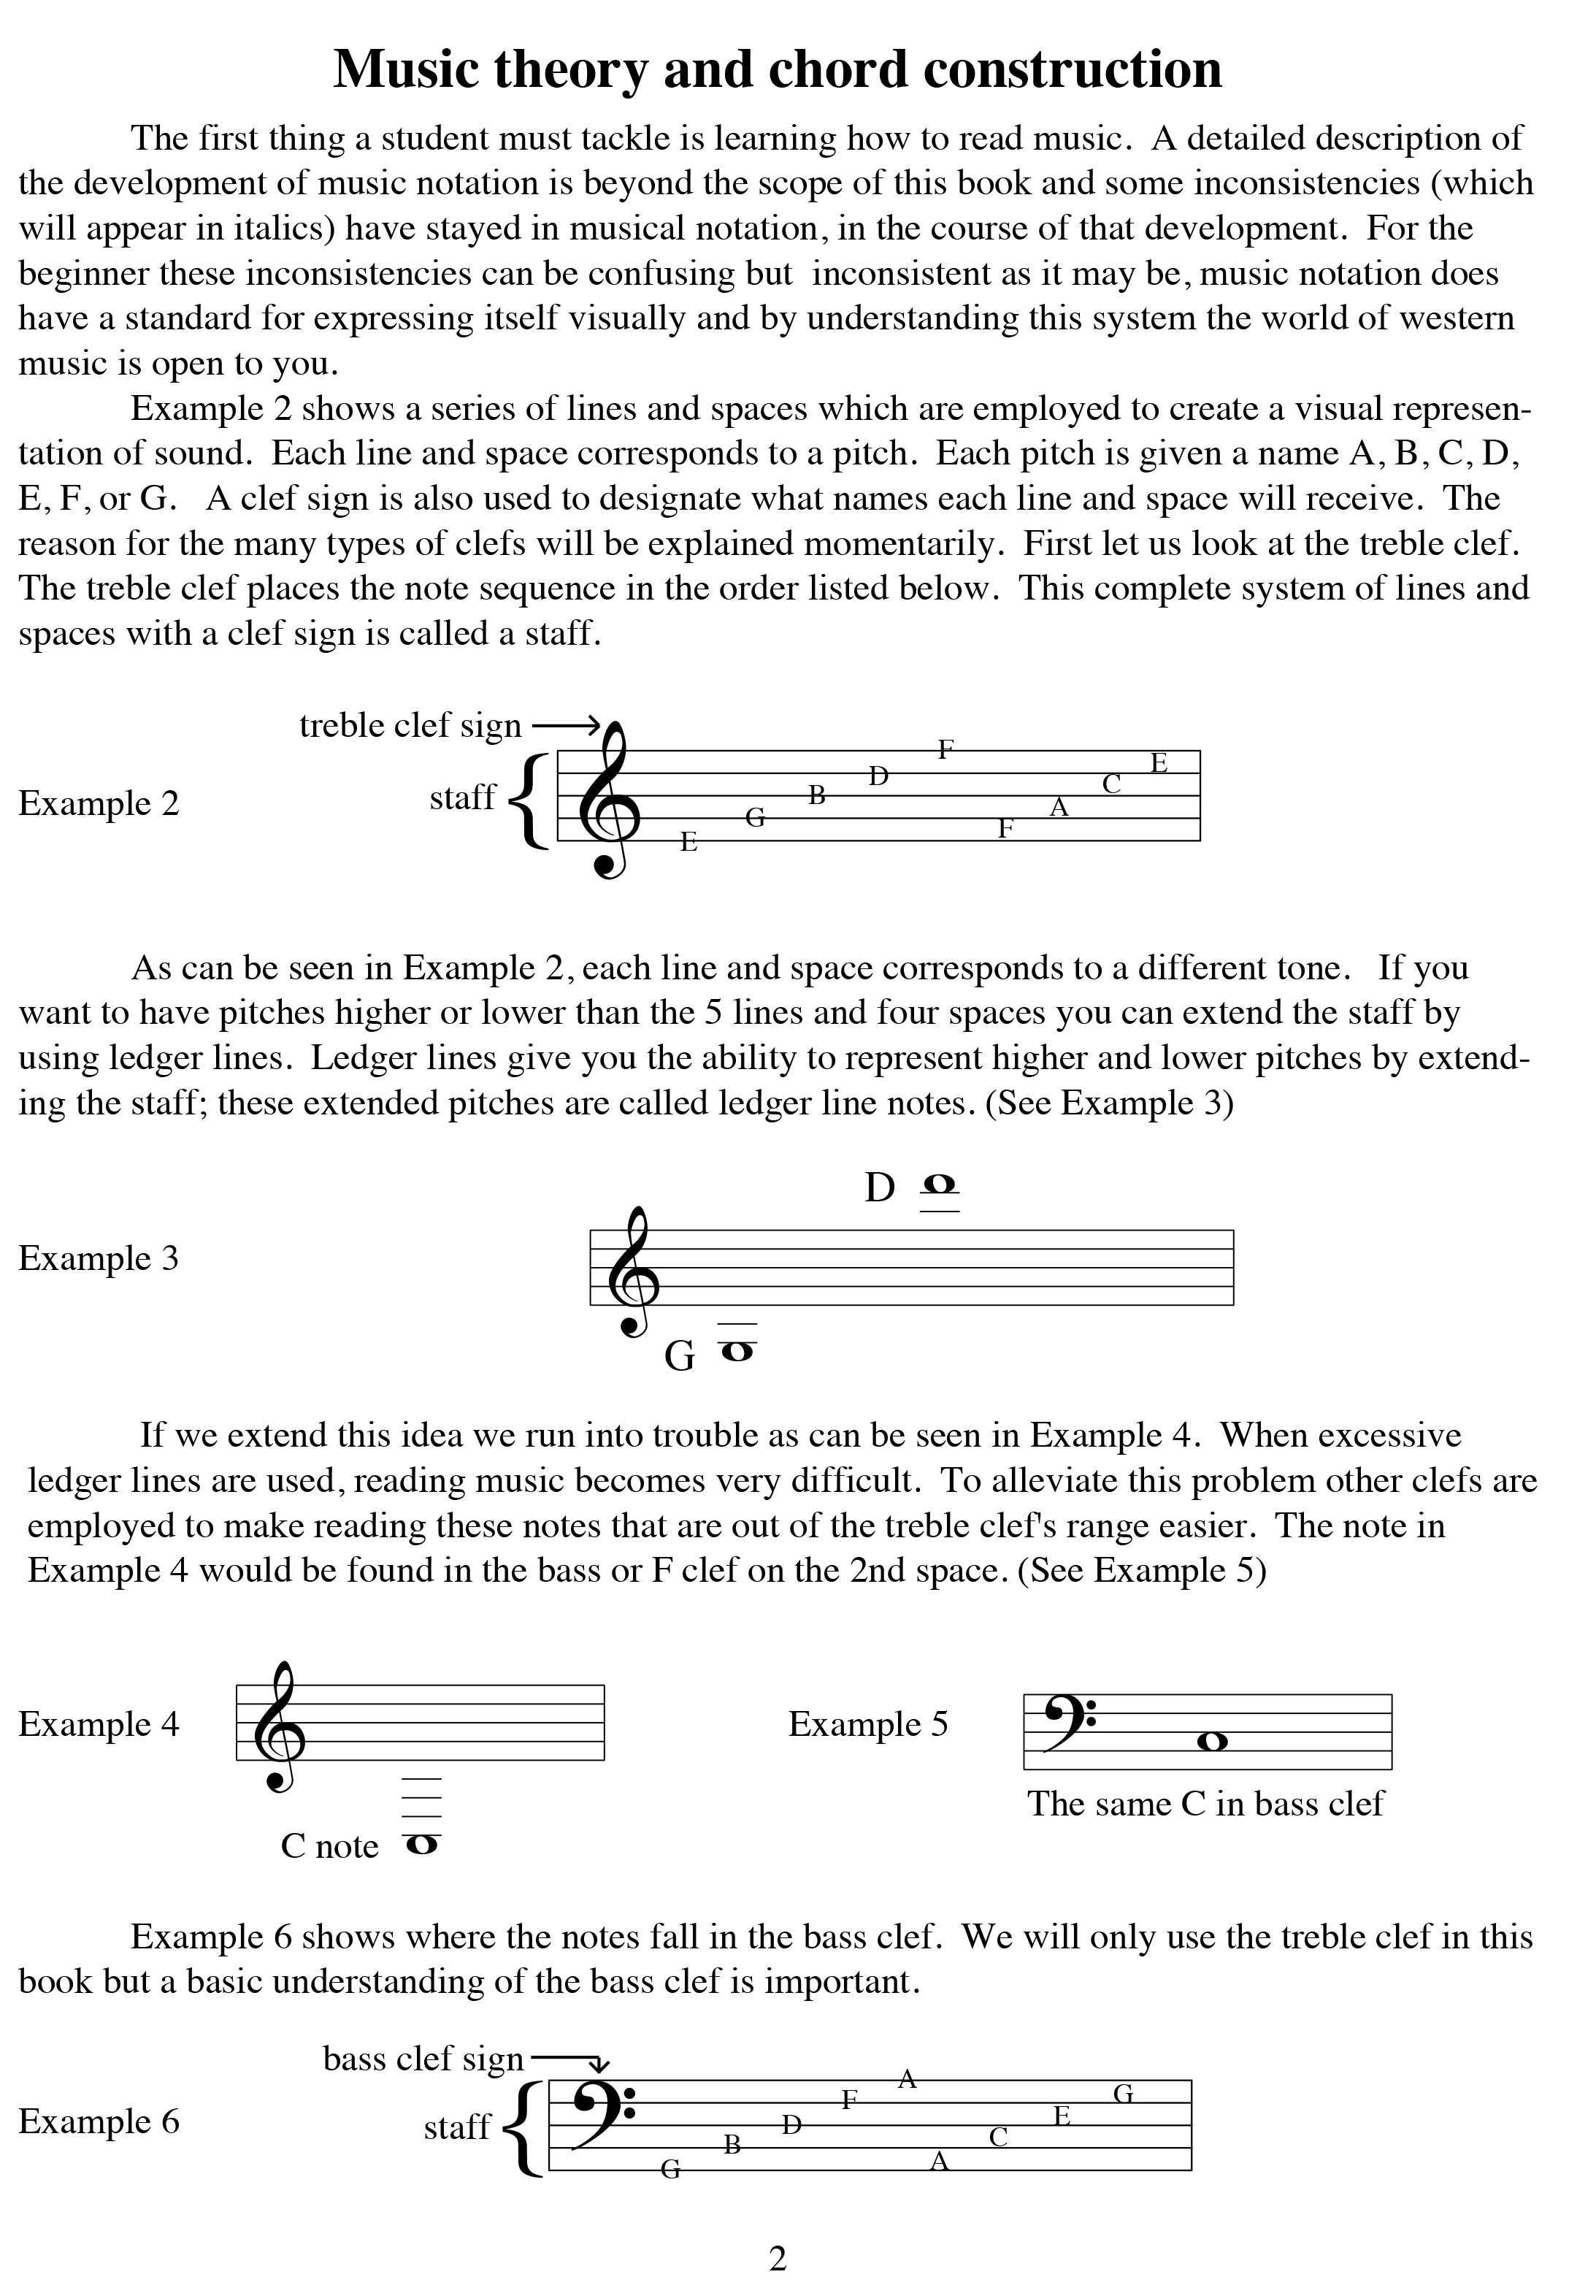 Music-Theory-Workbook-for-all-instruments-by-bruce-arnold-for-muse-eek.com-page1